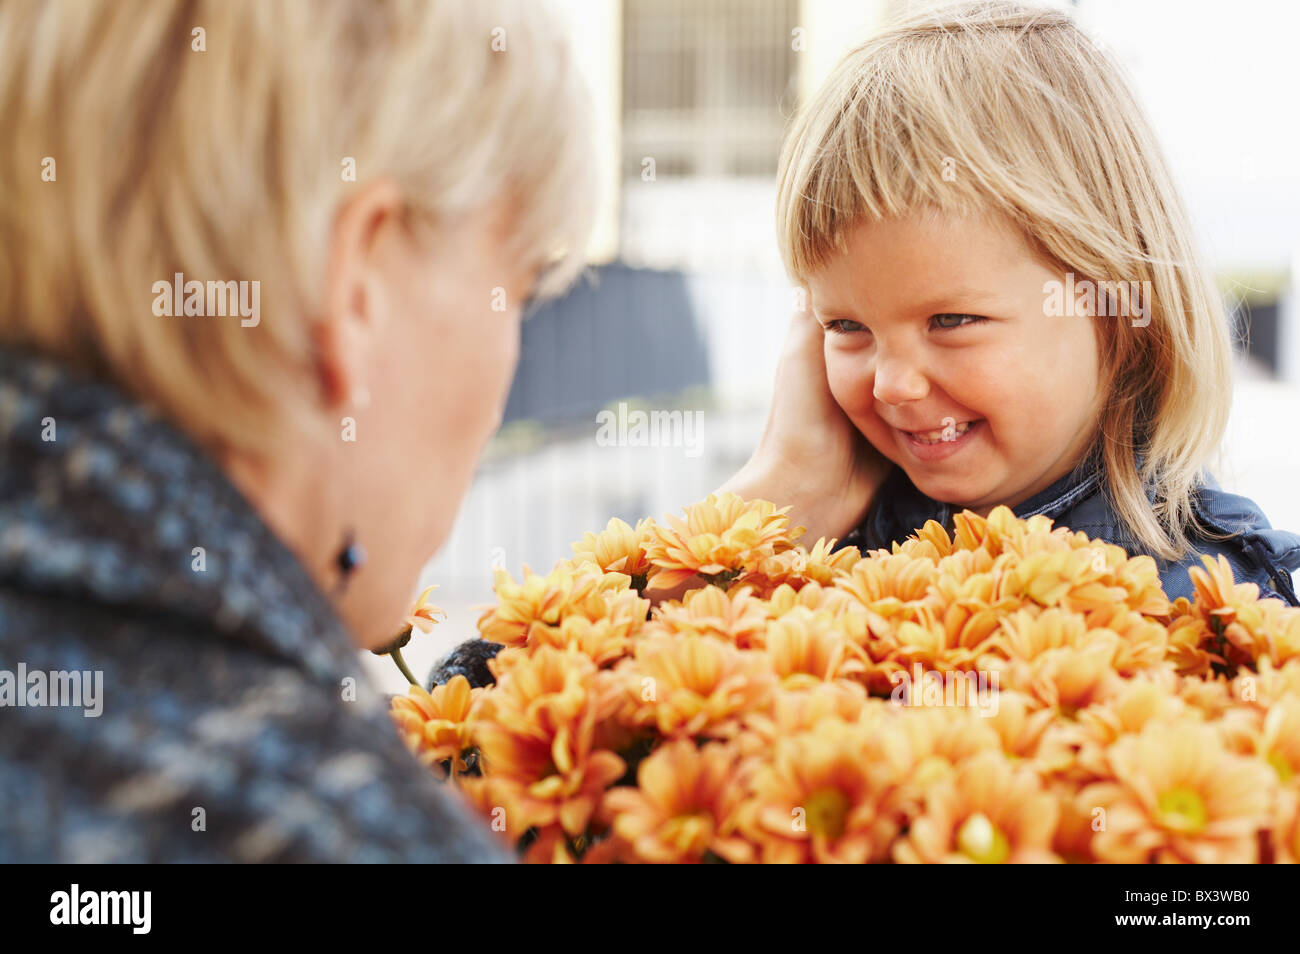 Woman with a little girl outdoors. - Stock Image